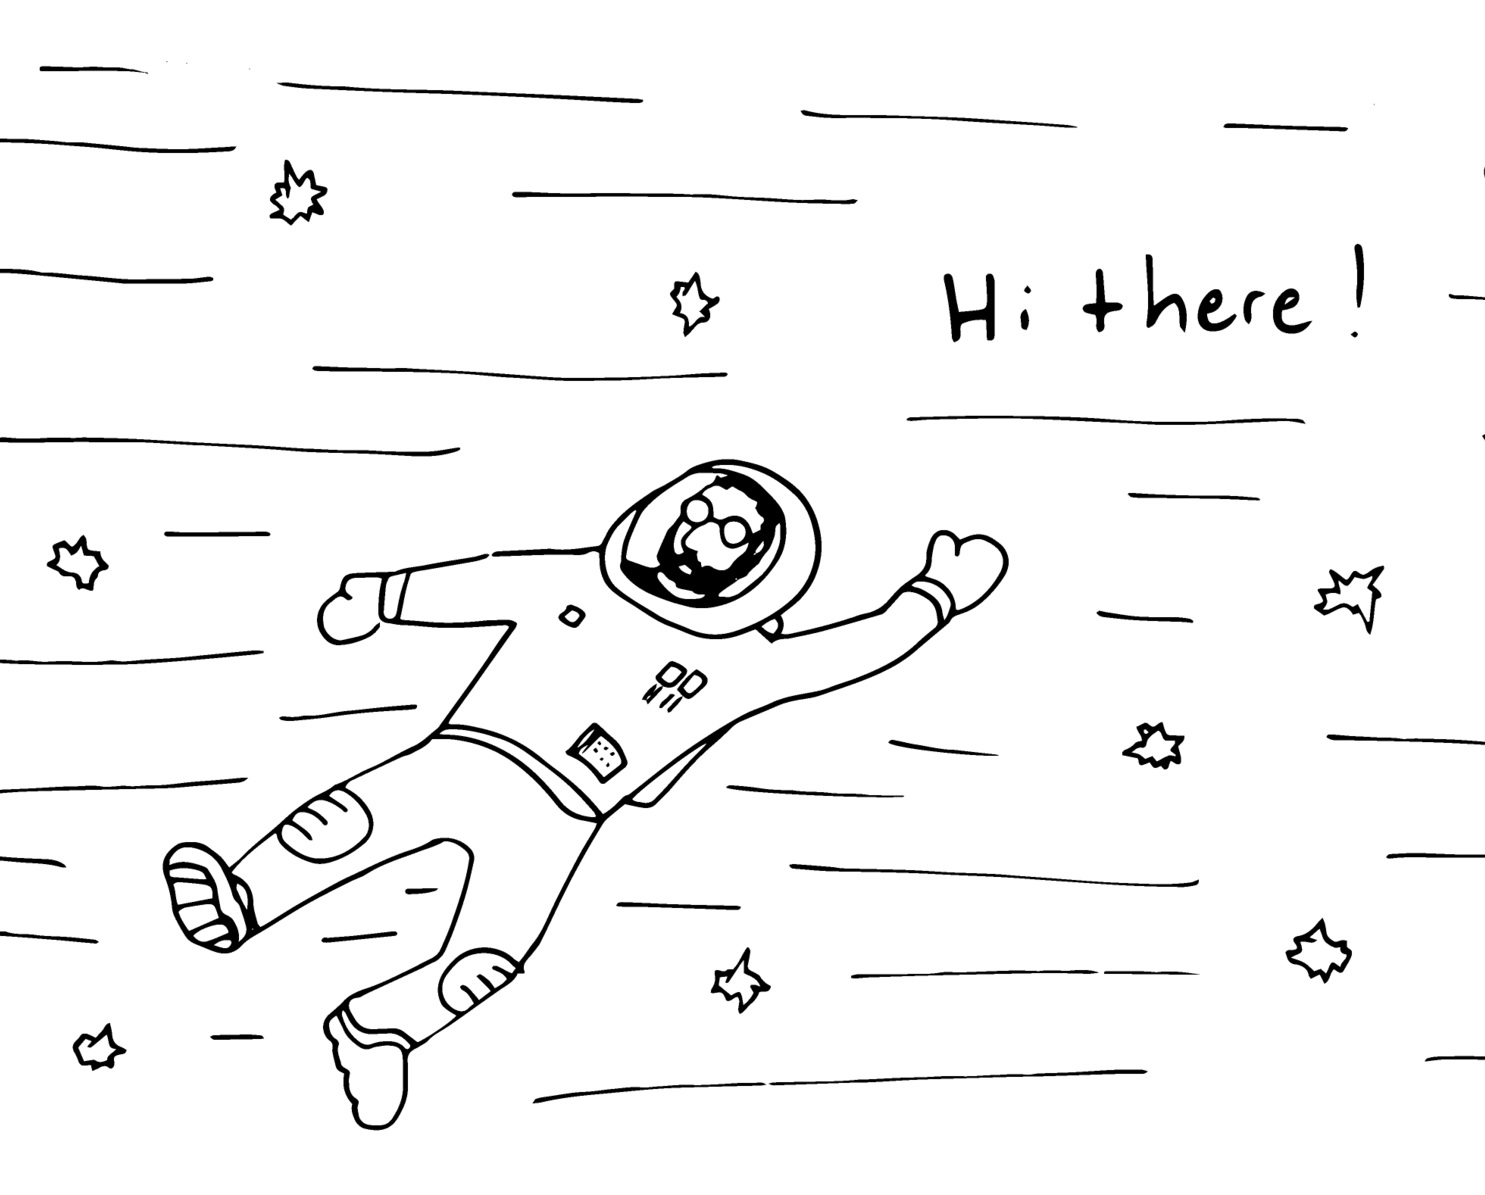 Hi+There+Me+in+Space-01.jpg